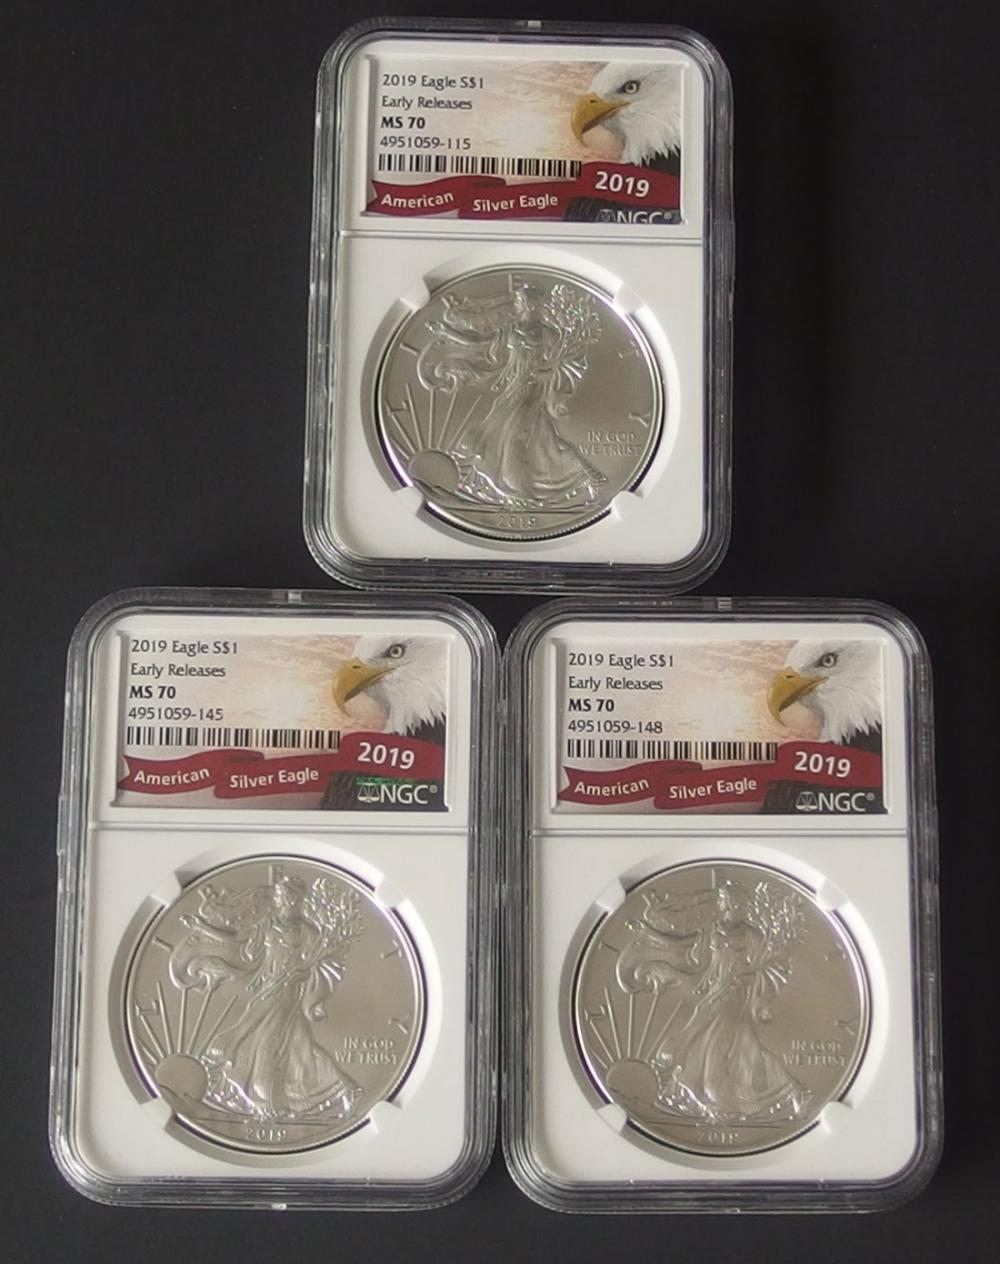 2019 NGC MS70 AMERICAN SILVER EAGLE COINS (3)